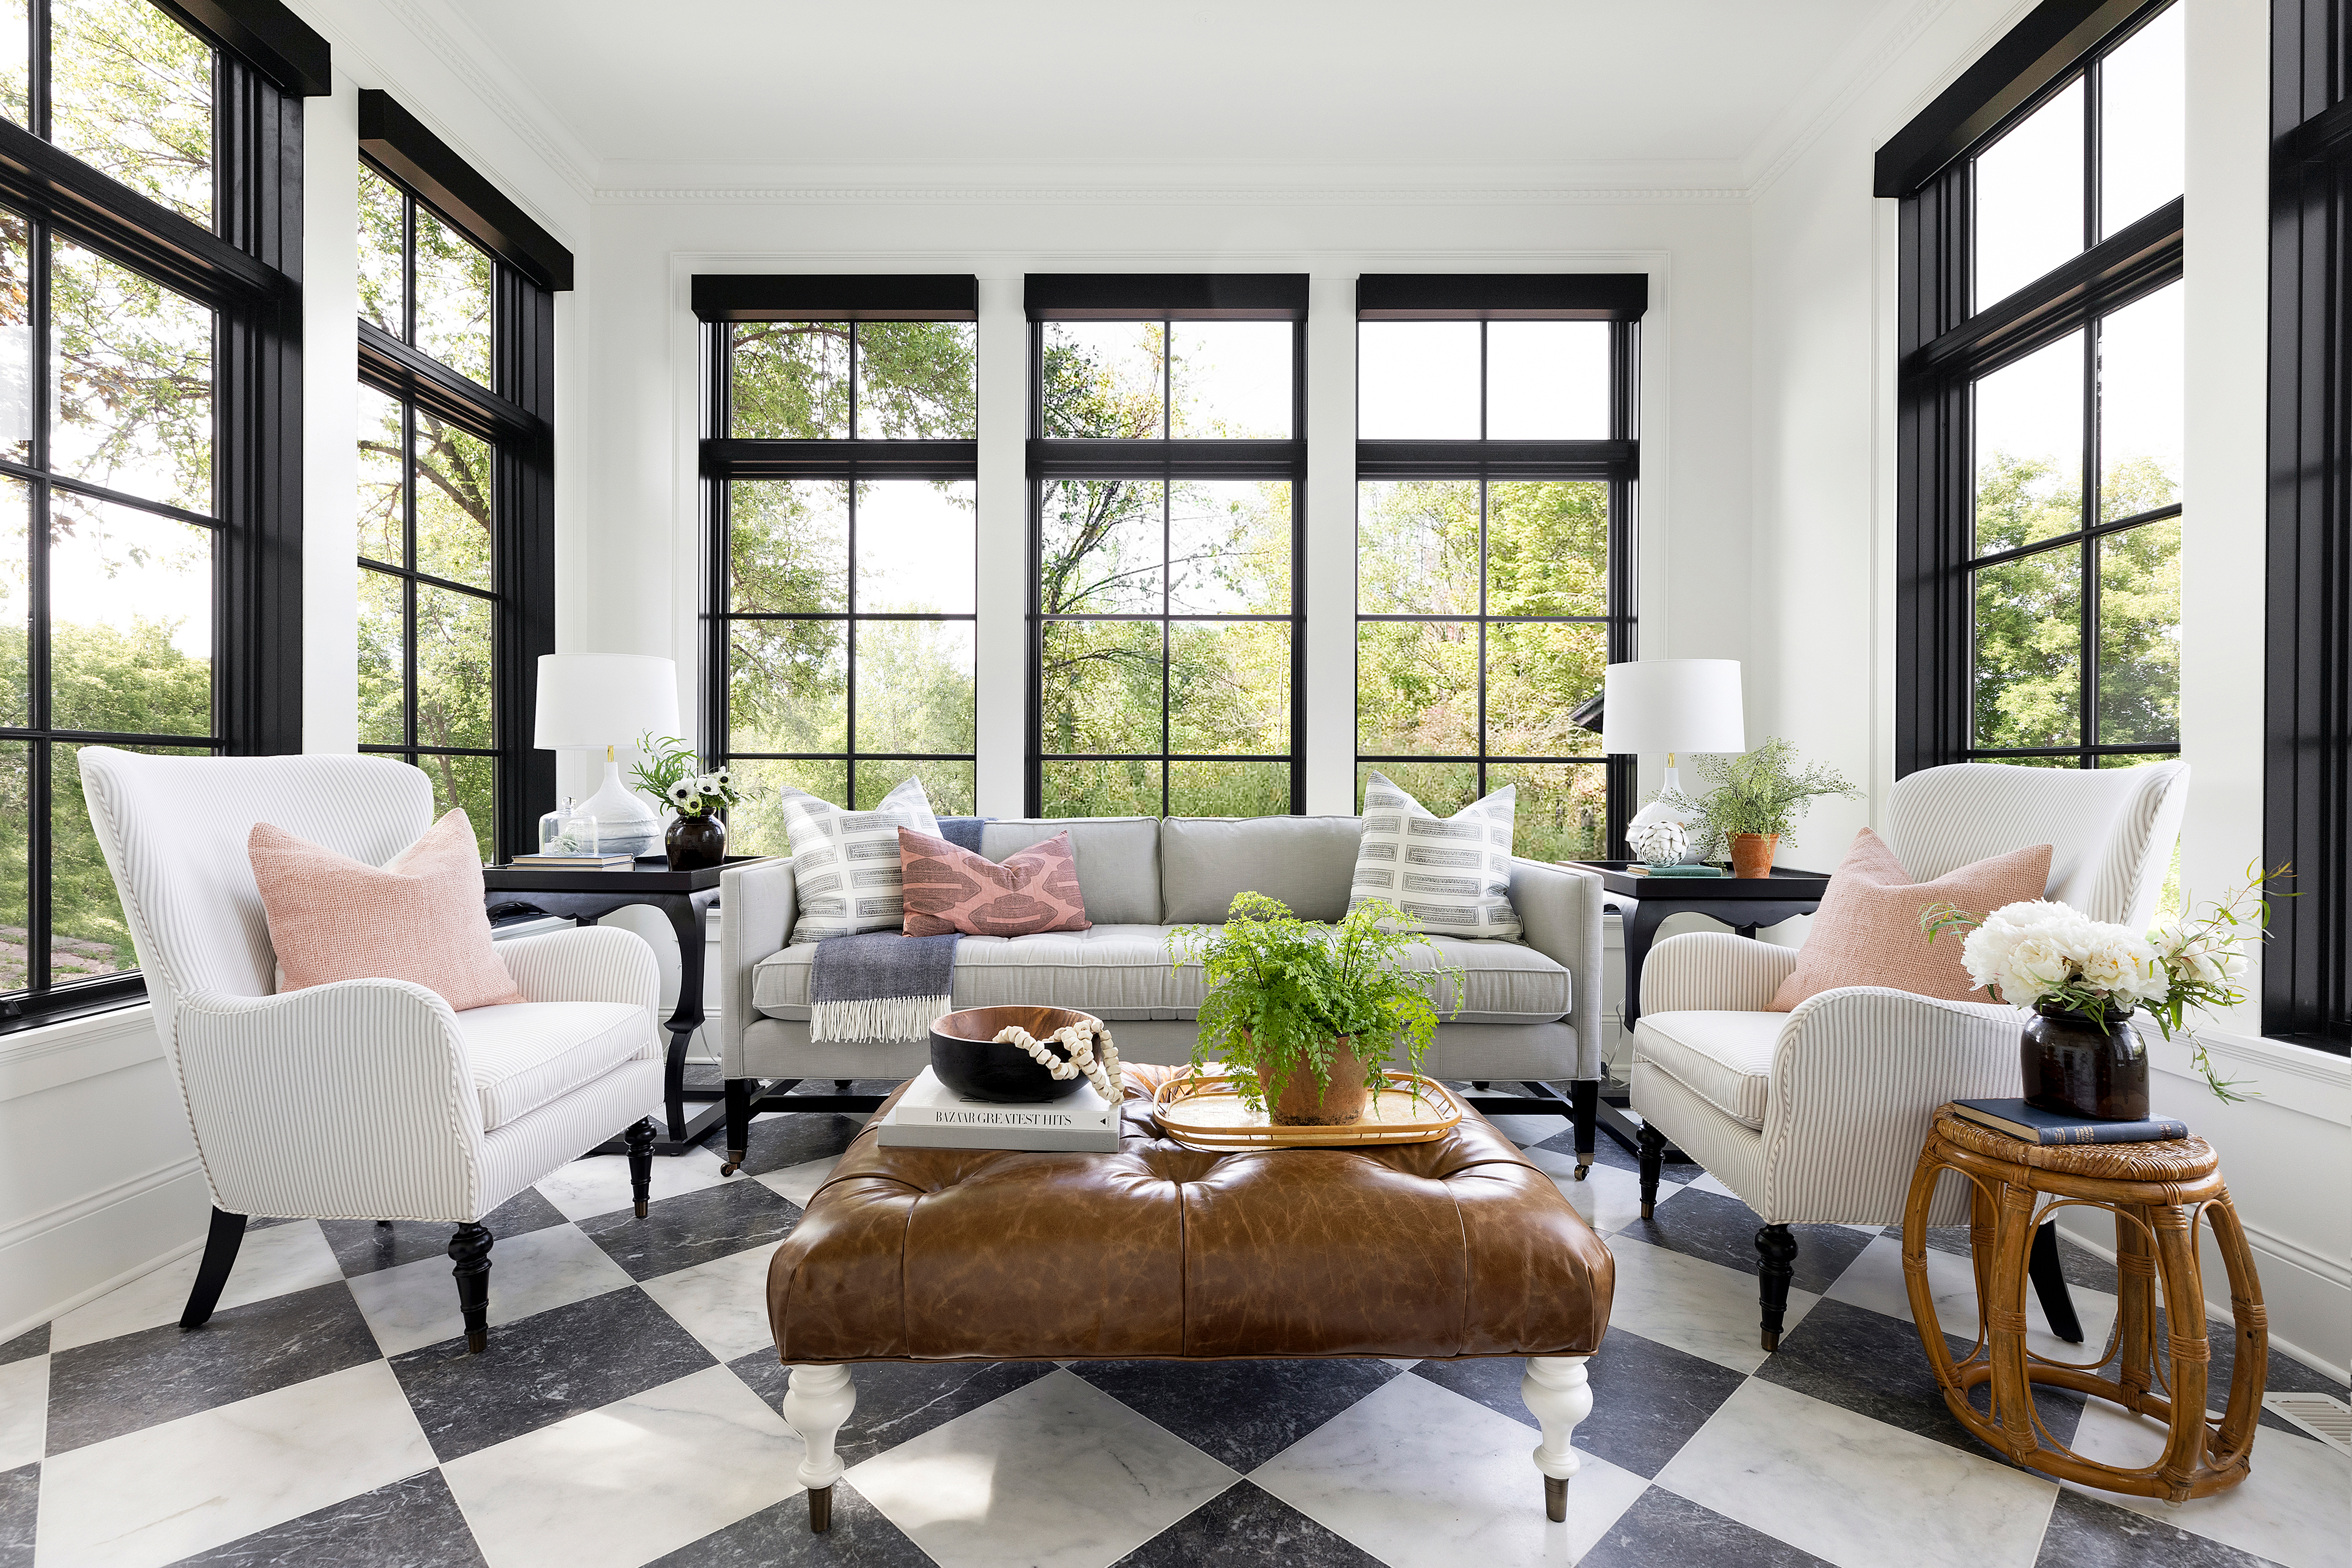 Sunroom with a sofa and chairs.